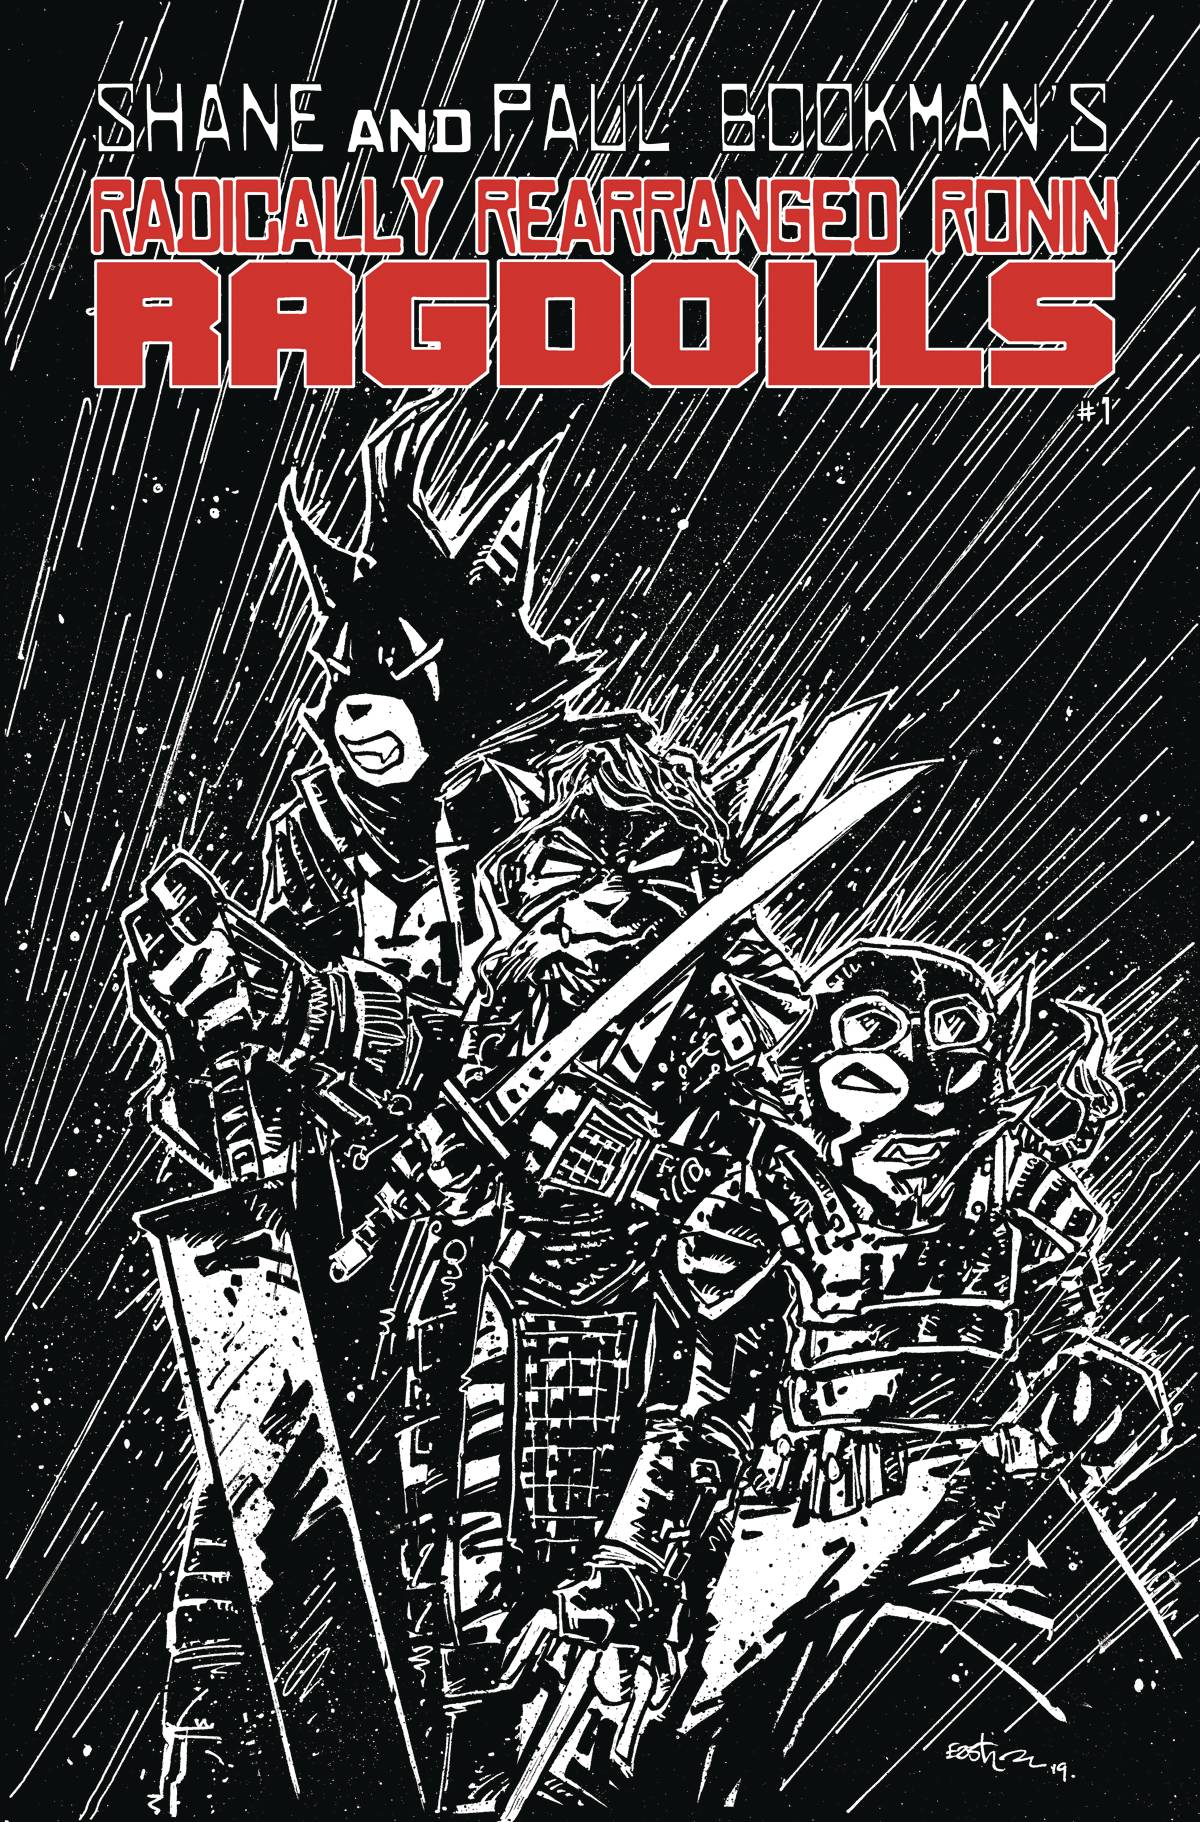 RADICALLY RONIN RAGDOLLS ONE SHOT CVR B EASTMAN.jpg